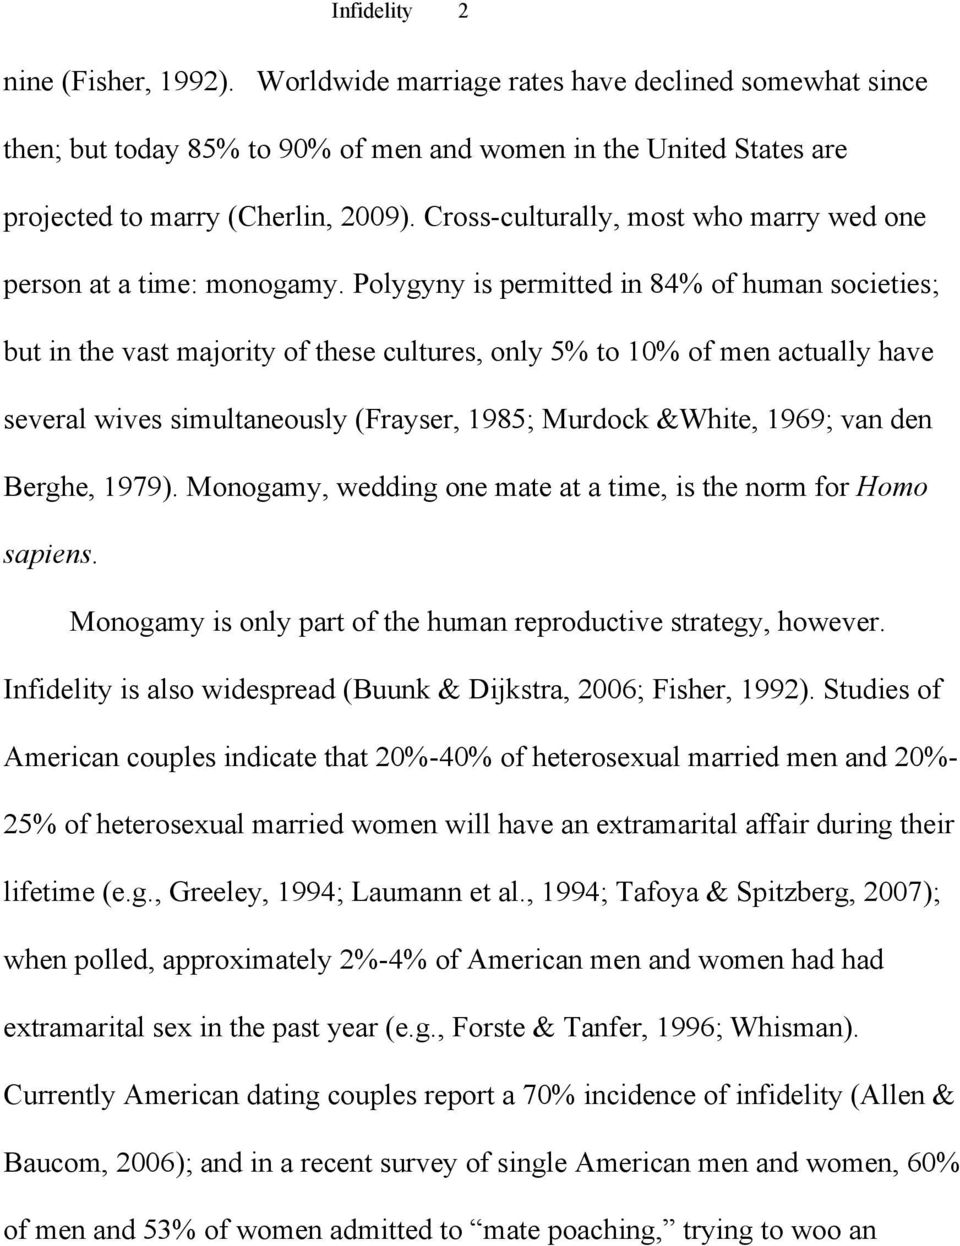 Polygyny is permitted in 84% of human societies; but in the vast majority of these cultures, only 5% to 10% of men actually have several wives simultaneously (Frayser, 1985; Murdock &White, 1969; van